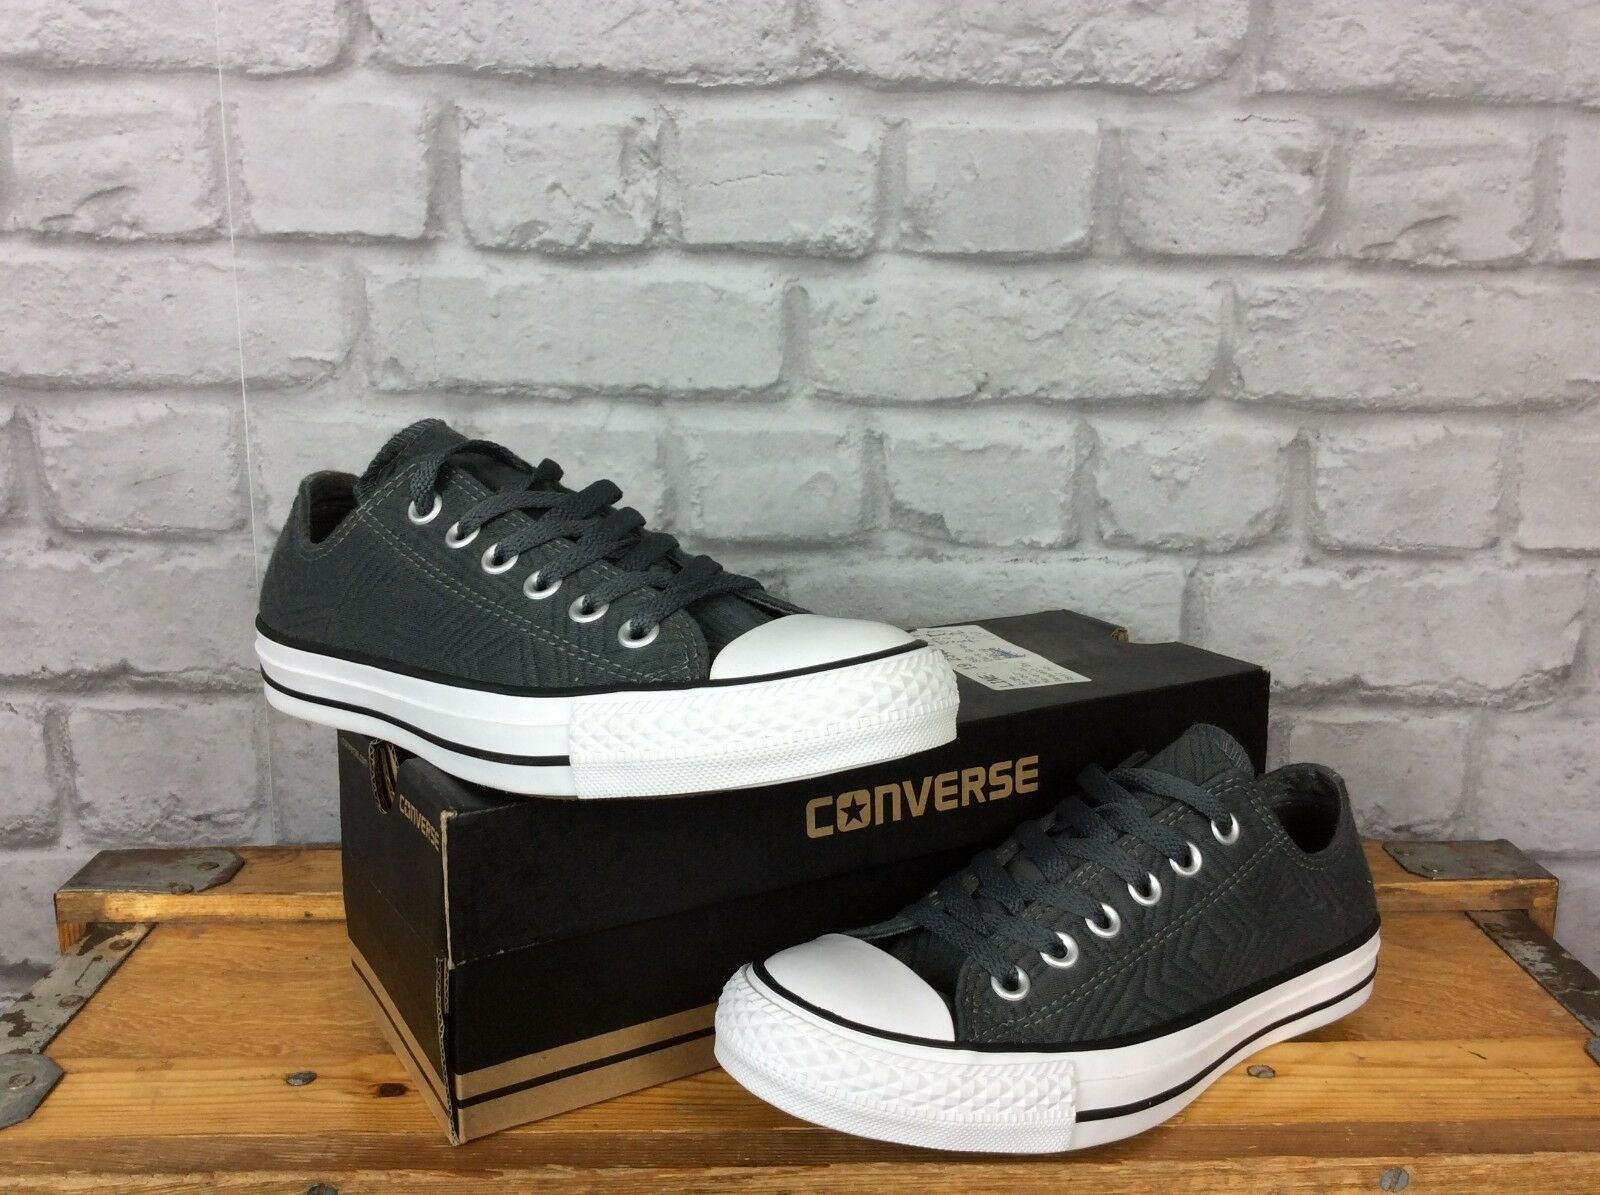 CONVERSE UK 5 EU 37.5 GREY CHUCK TAYLOR ALL STAR DARK GREY 37.5 JERSEY QUILT OX TRAINERS abecaa